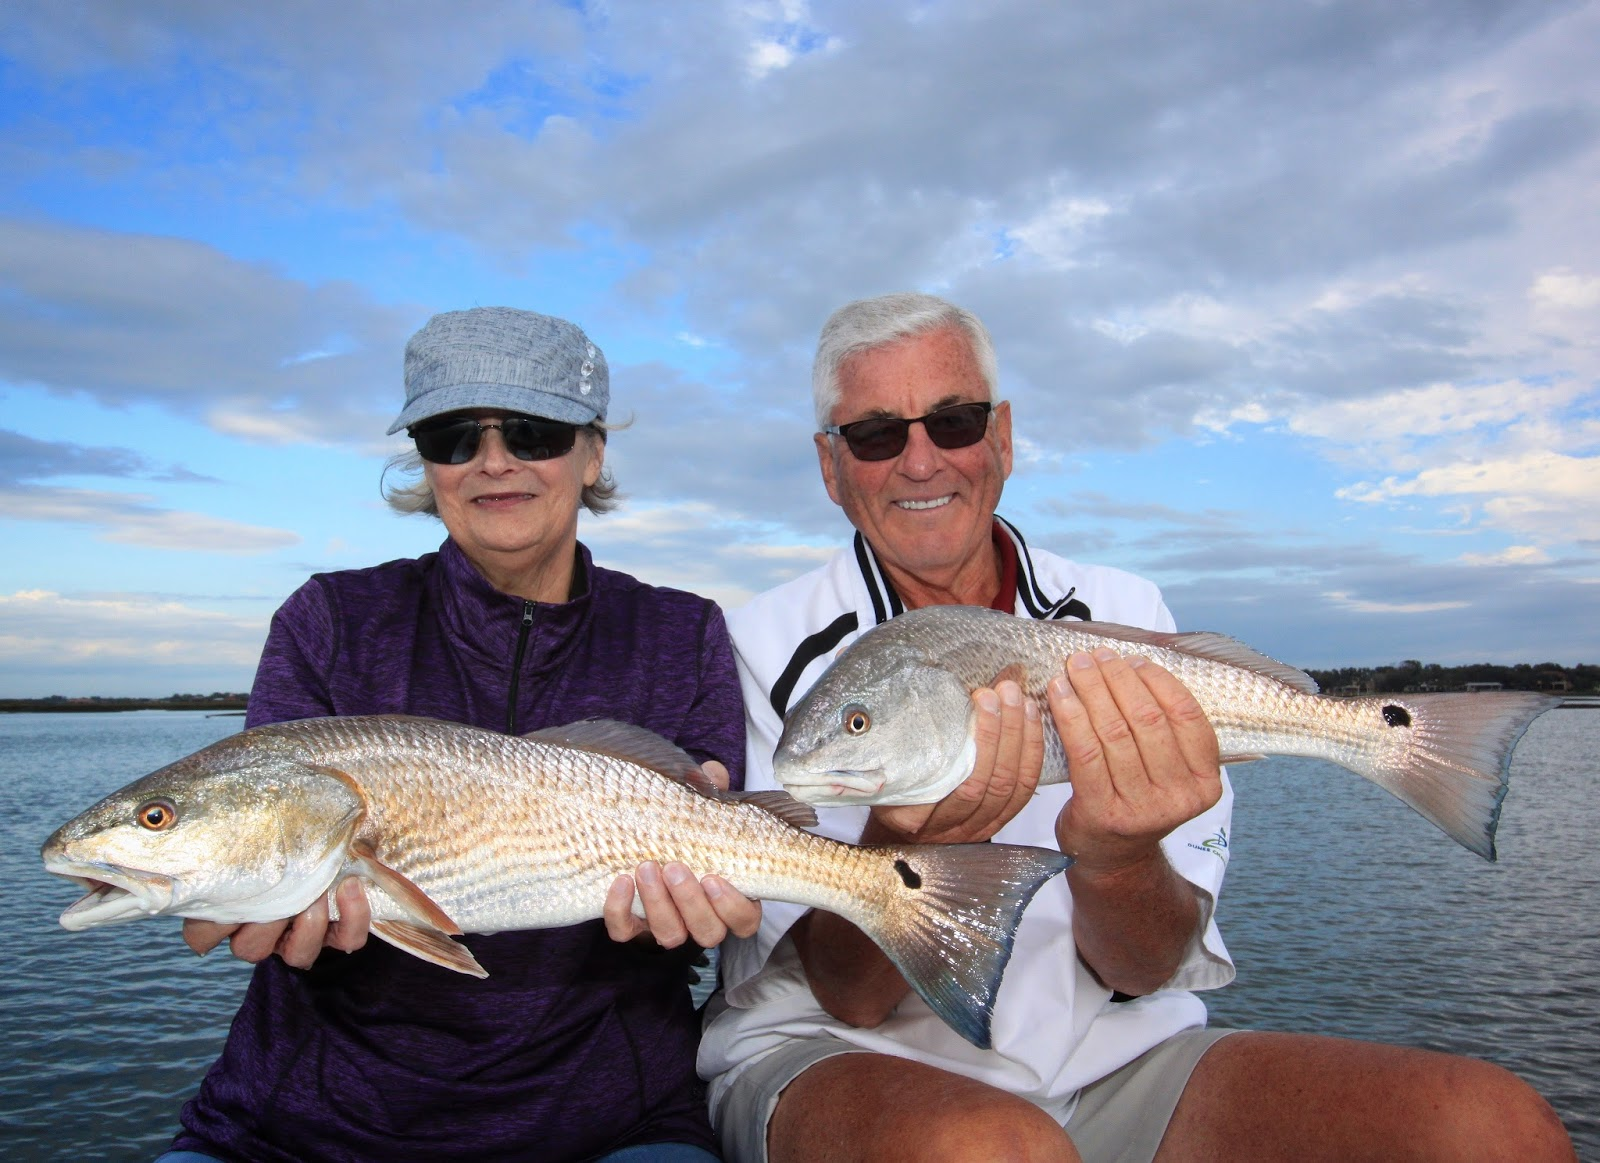 St augustine palm coast fishing report december 14th for St augustine fishing spots